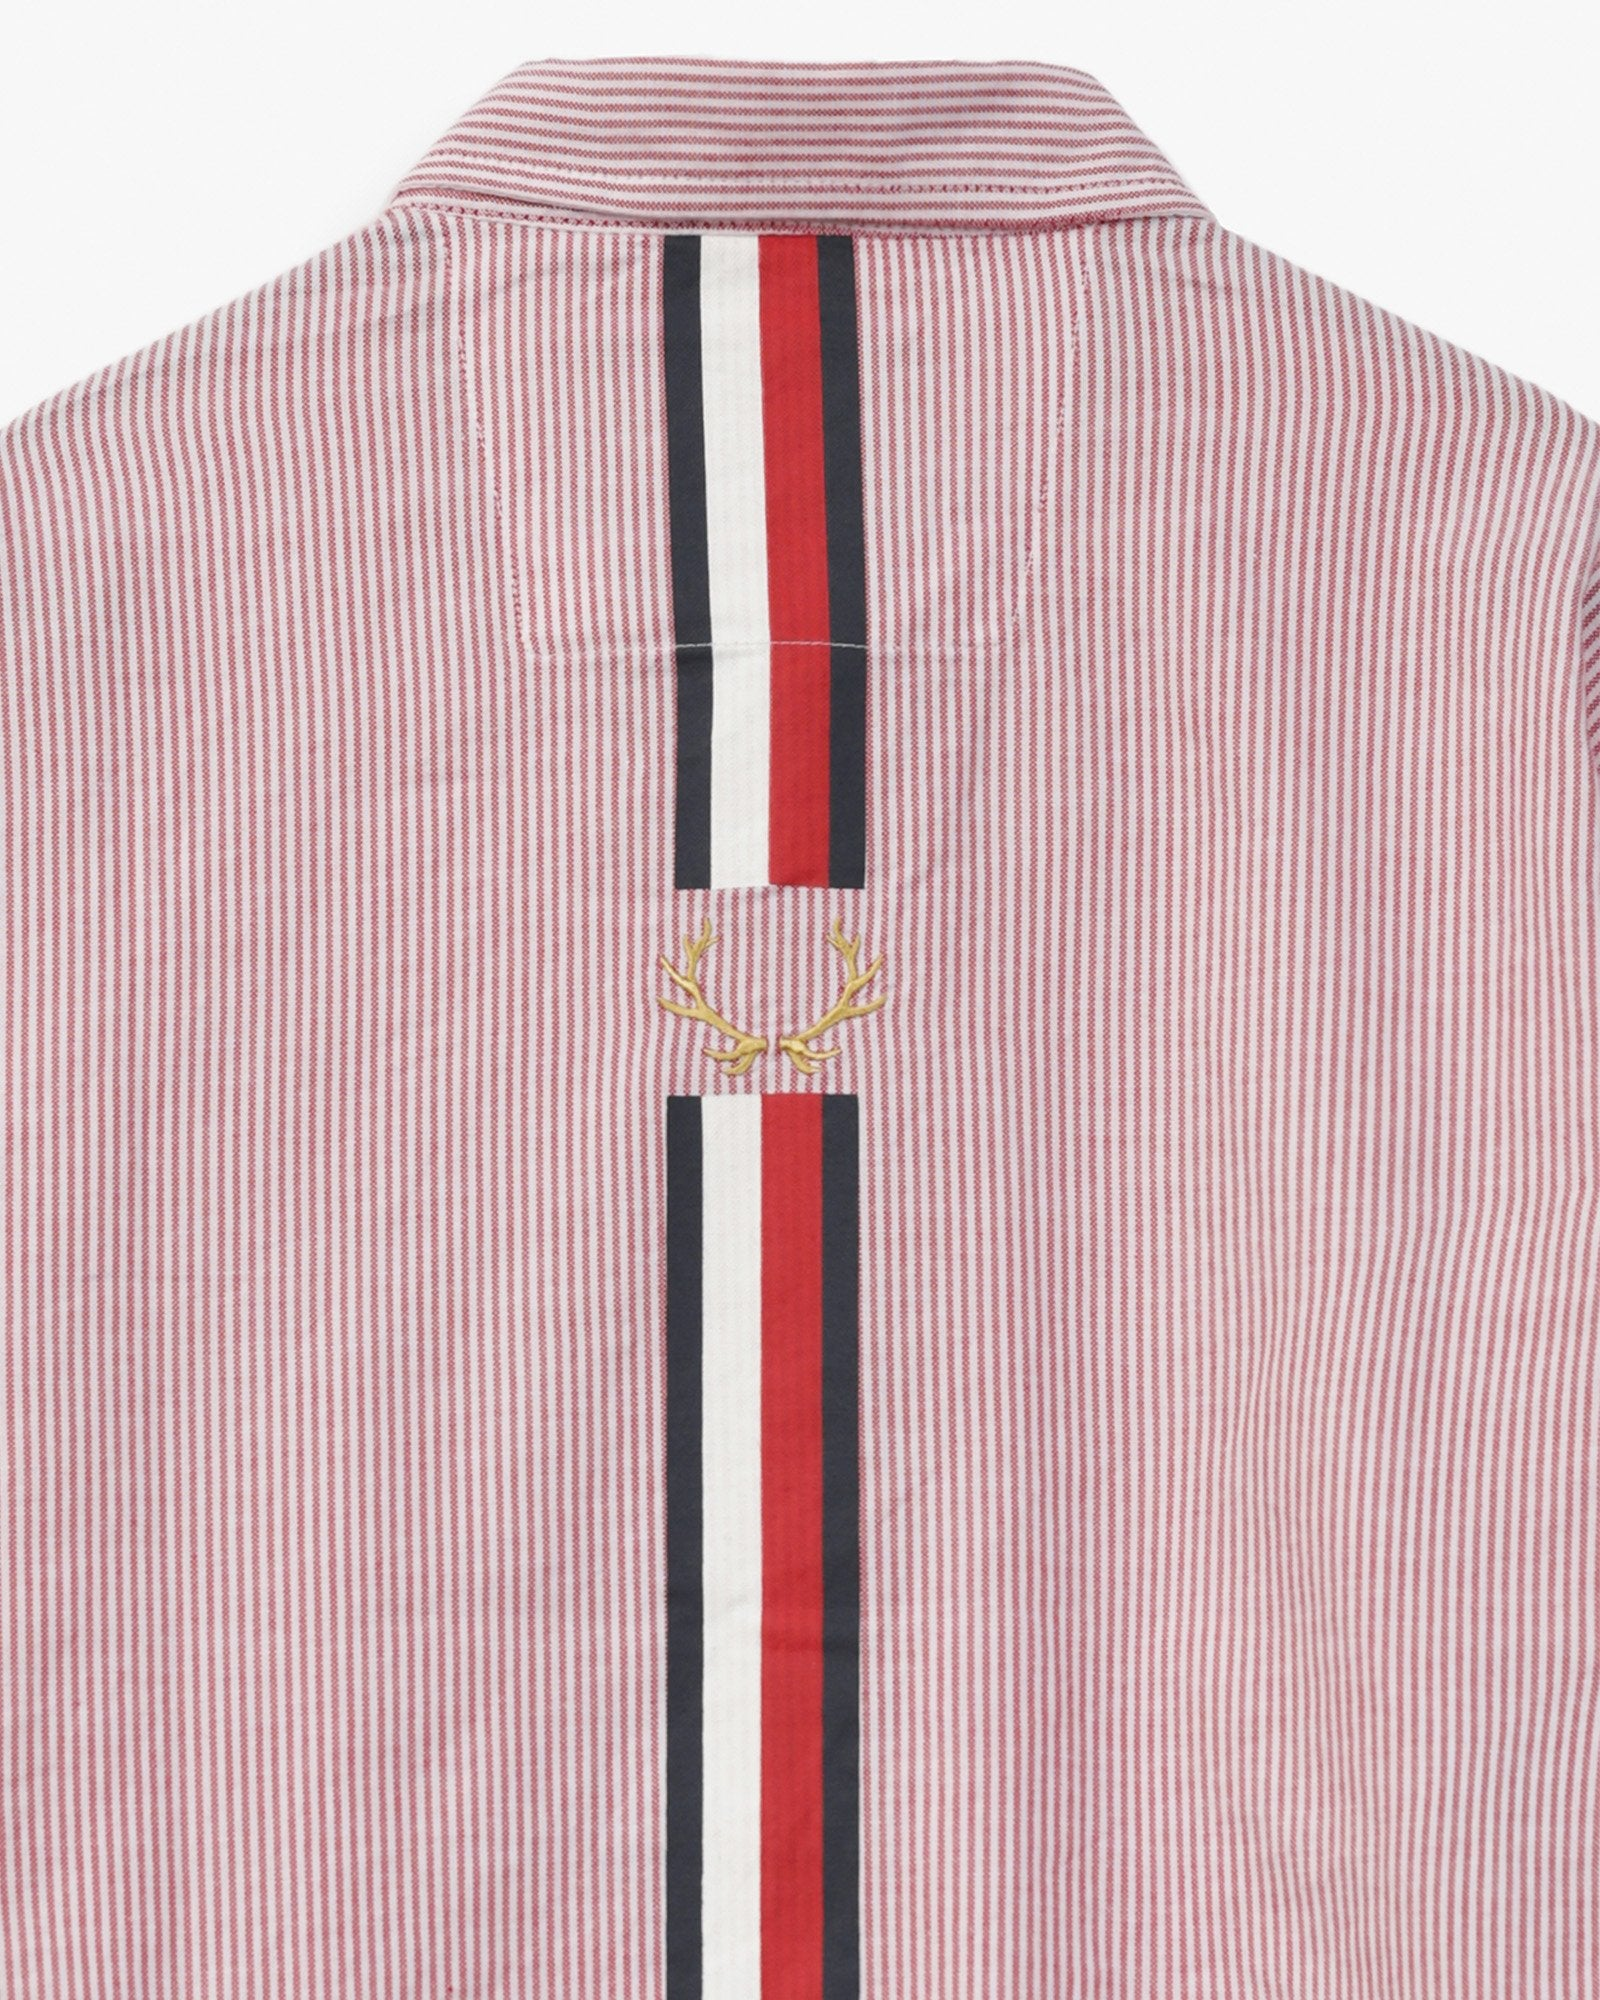 Striped Shirt with Emblem Detail